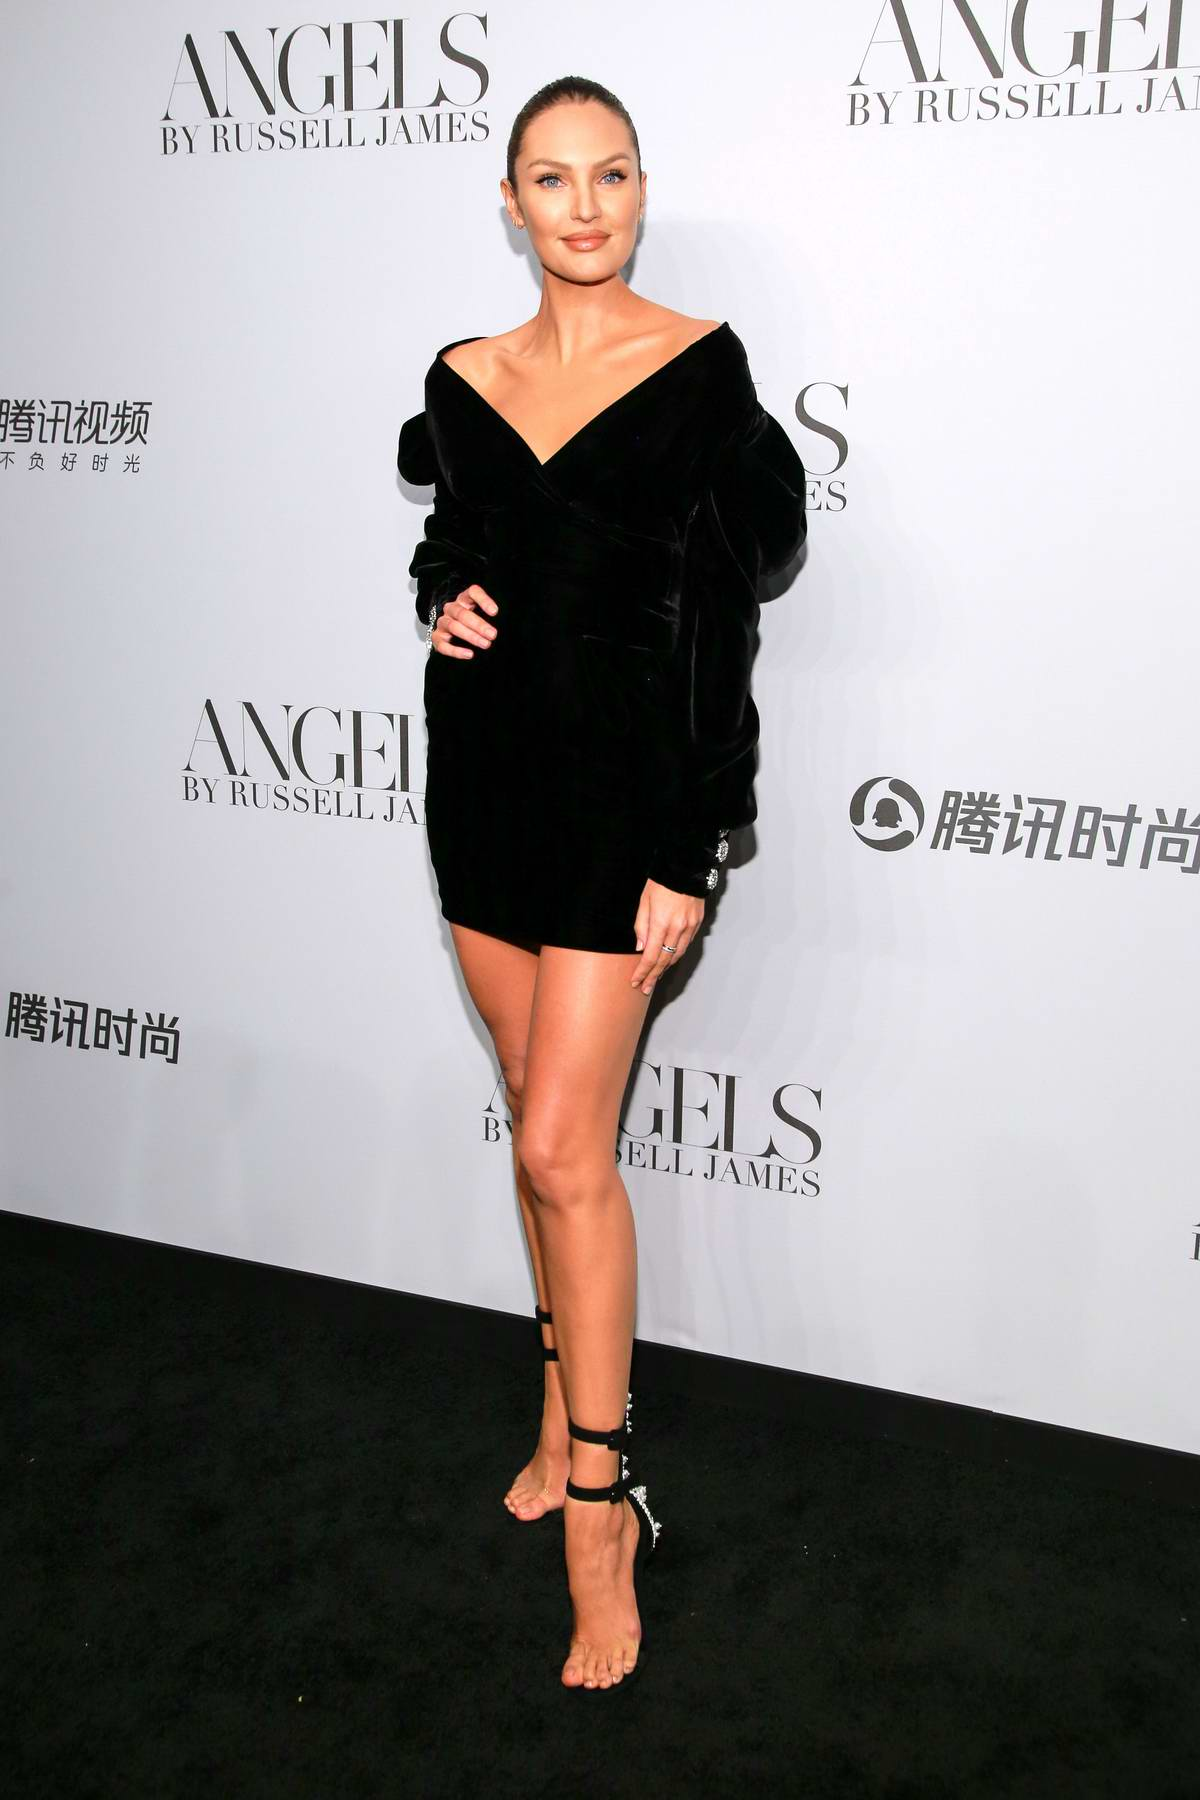 Candice Swanepoel attends 'ANGELS' by Russell James Book Launch And Exhibit in New York City